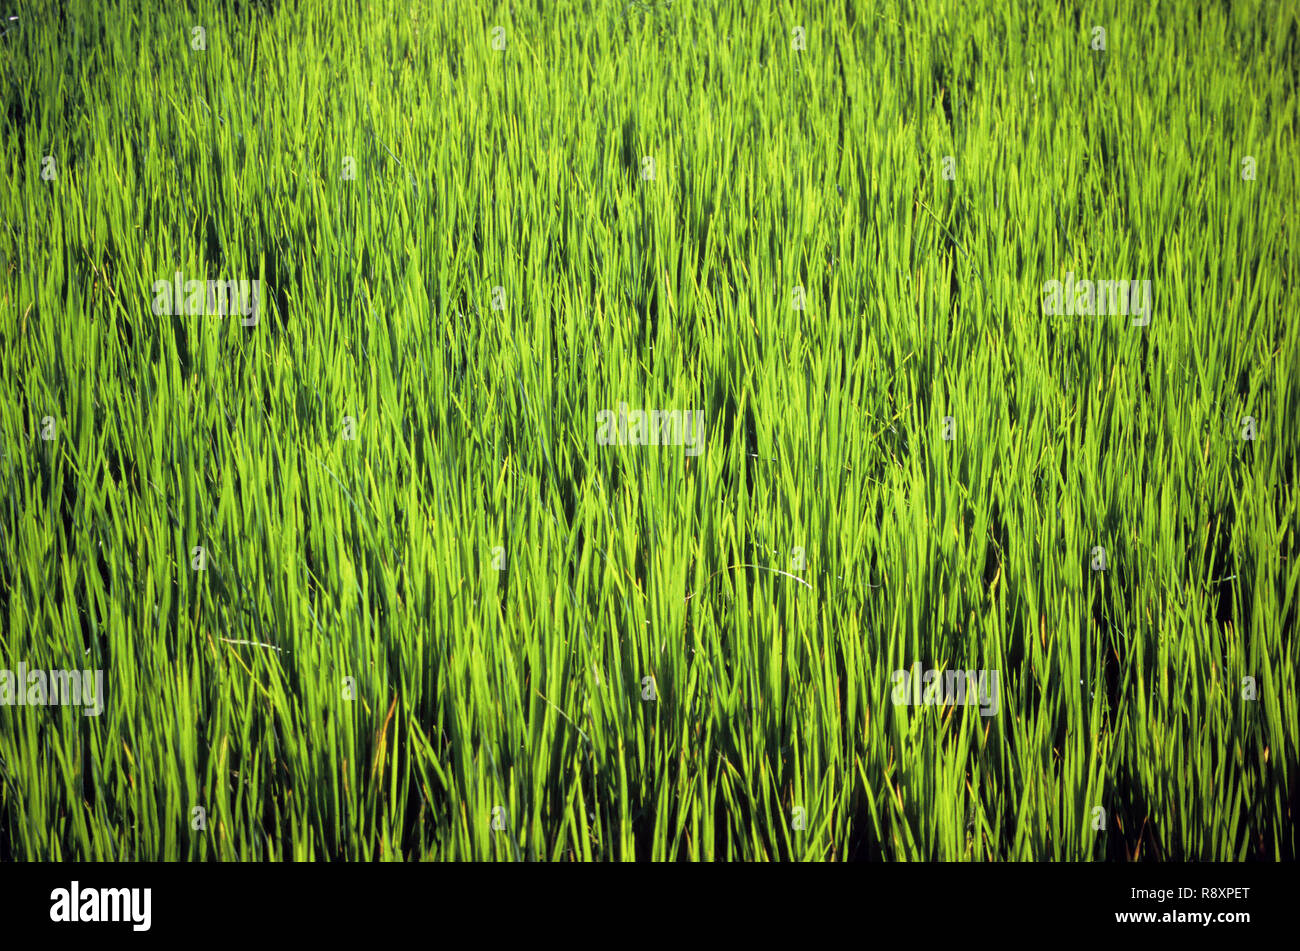 Paddy rice crop growing in fields in India - Stock Image